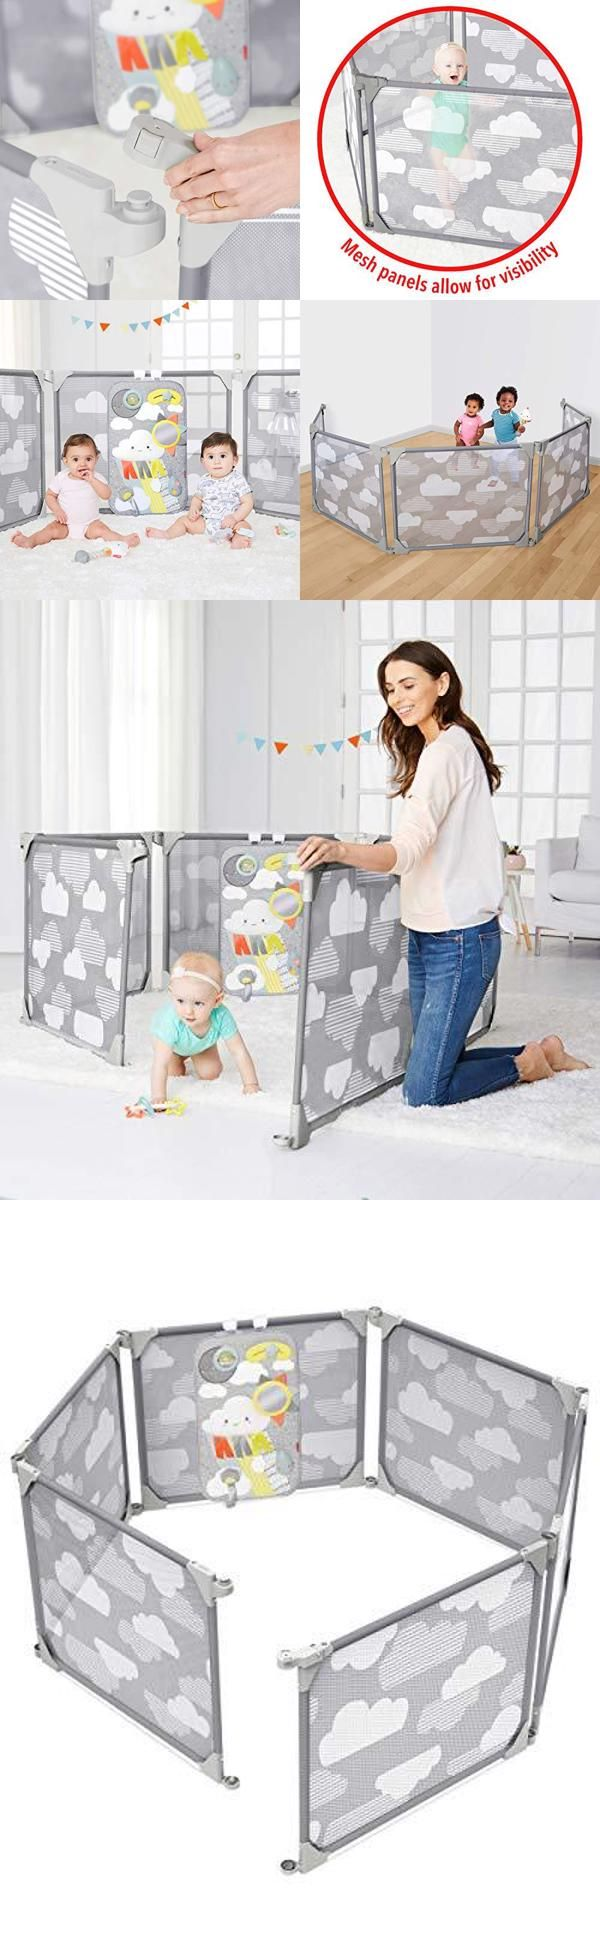 Skip Hop Baby Gate Expandable Or Wall Mounted Playpen With Clip On Play Surface Silver Lining Cloud Omomashop In 2020 Baby Gates Playpen Baby Proofing